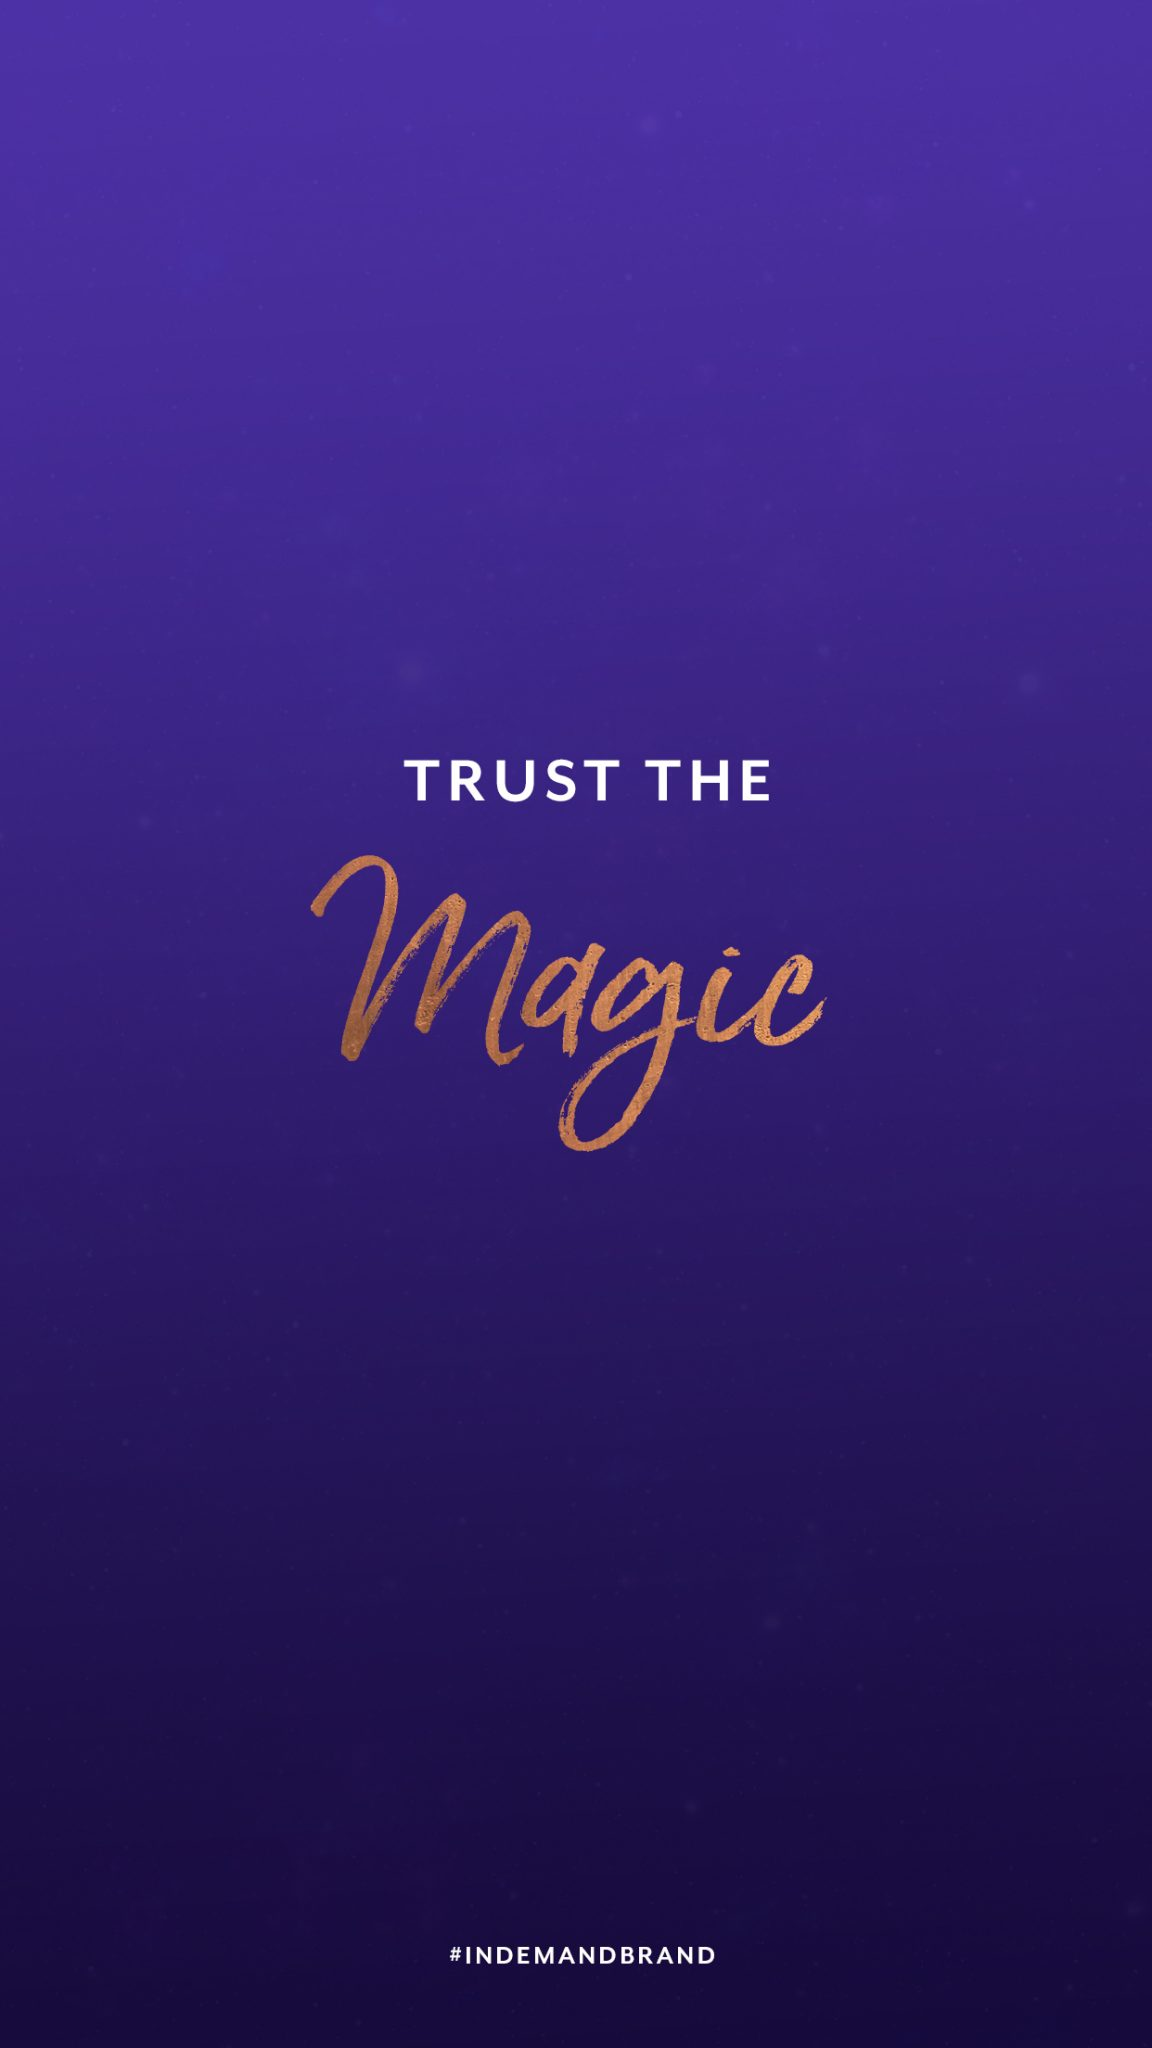 Trust the magic. #InDemandBrand